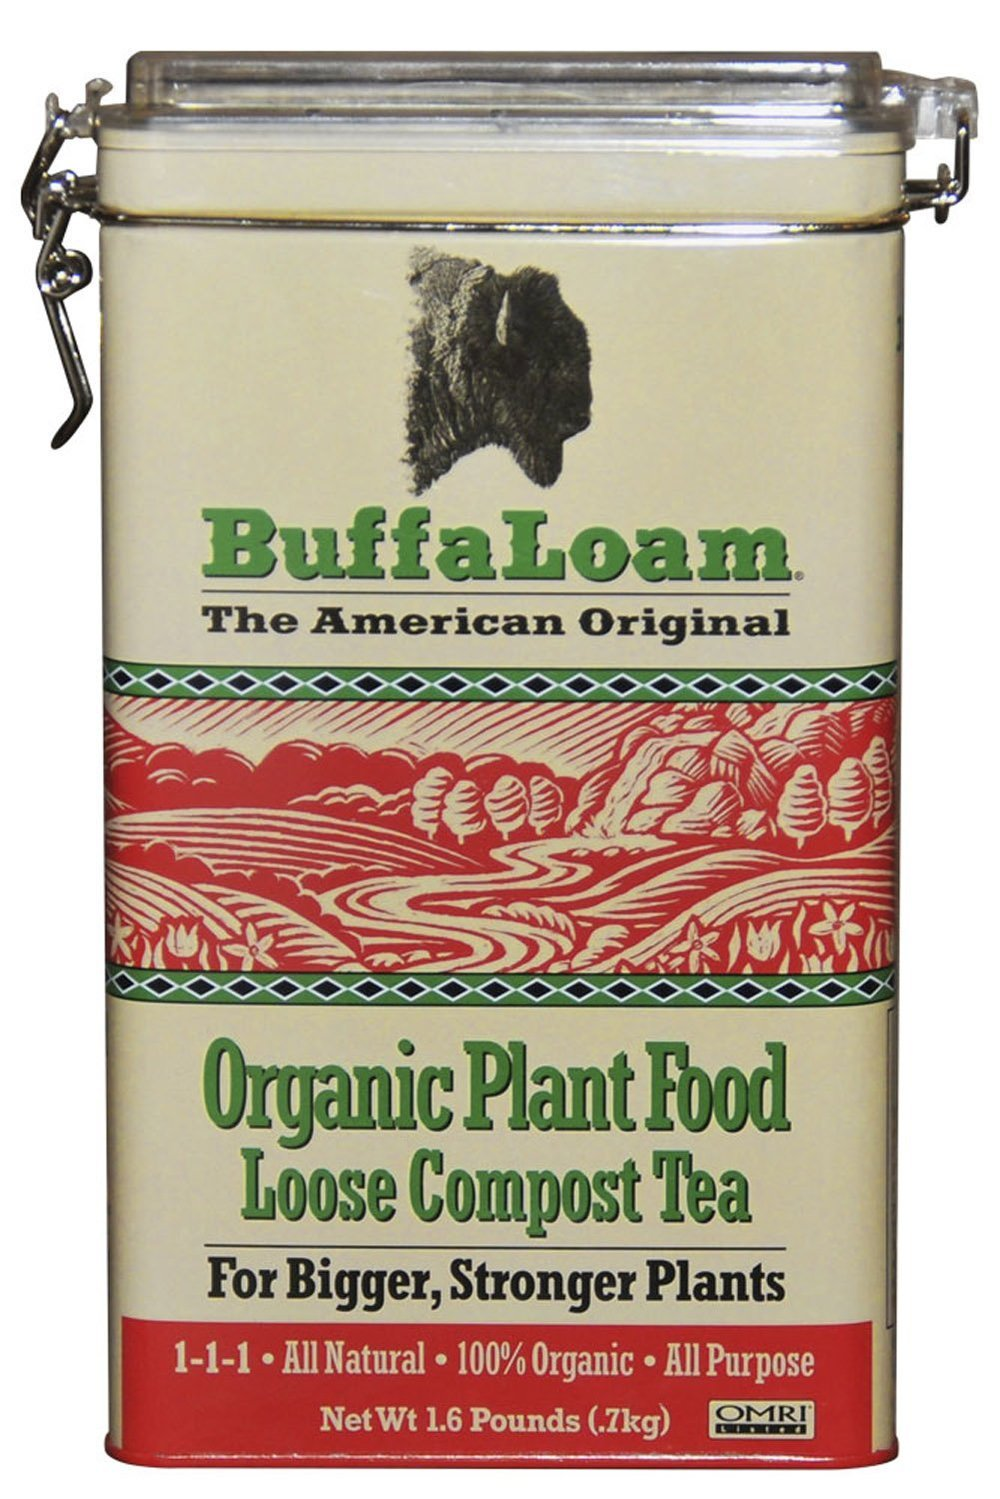 Buffaloam Organic BLPF Plant Food Loose Compost Tea.jpg